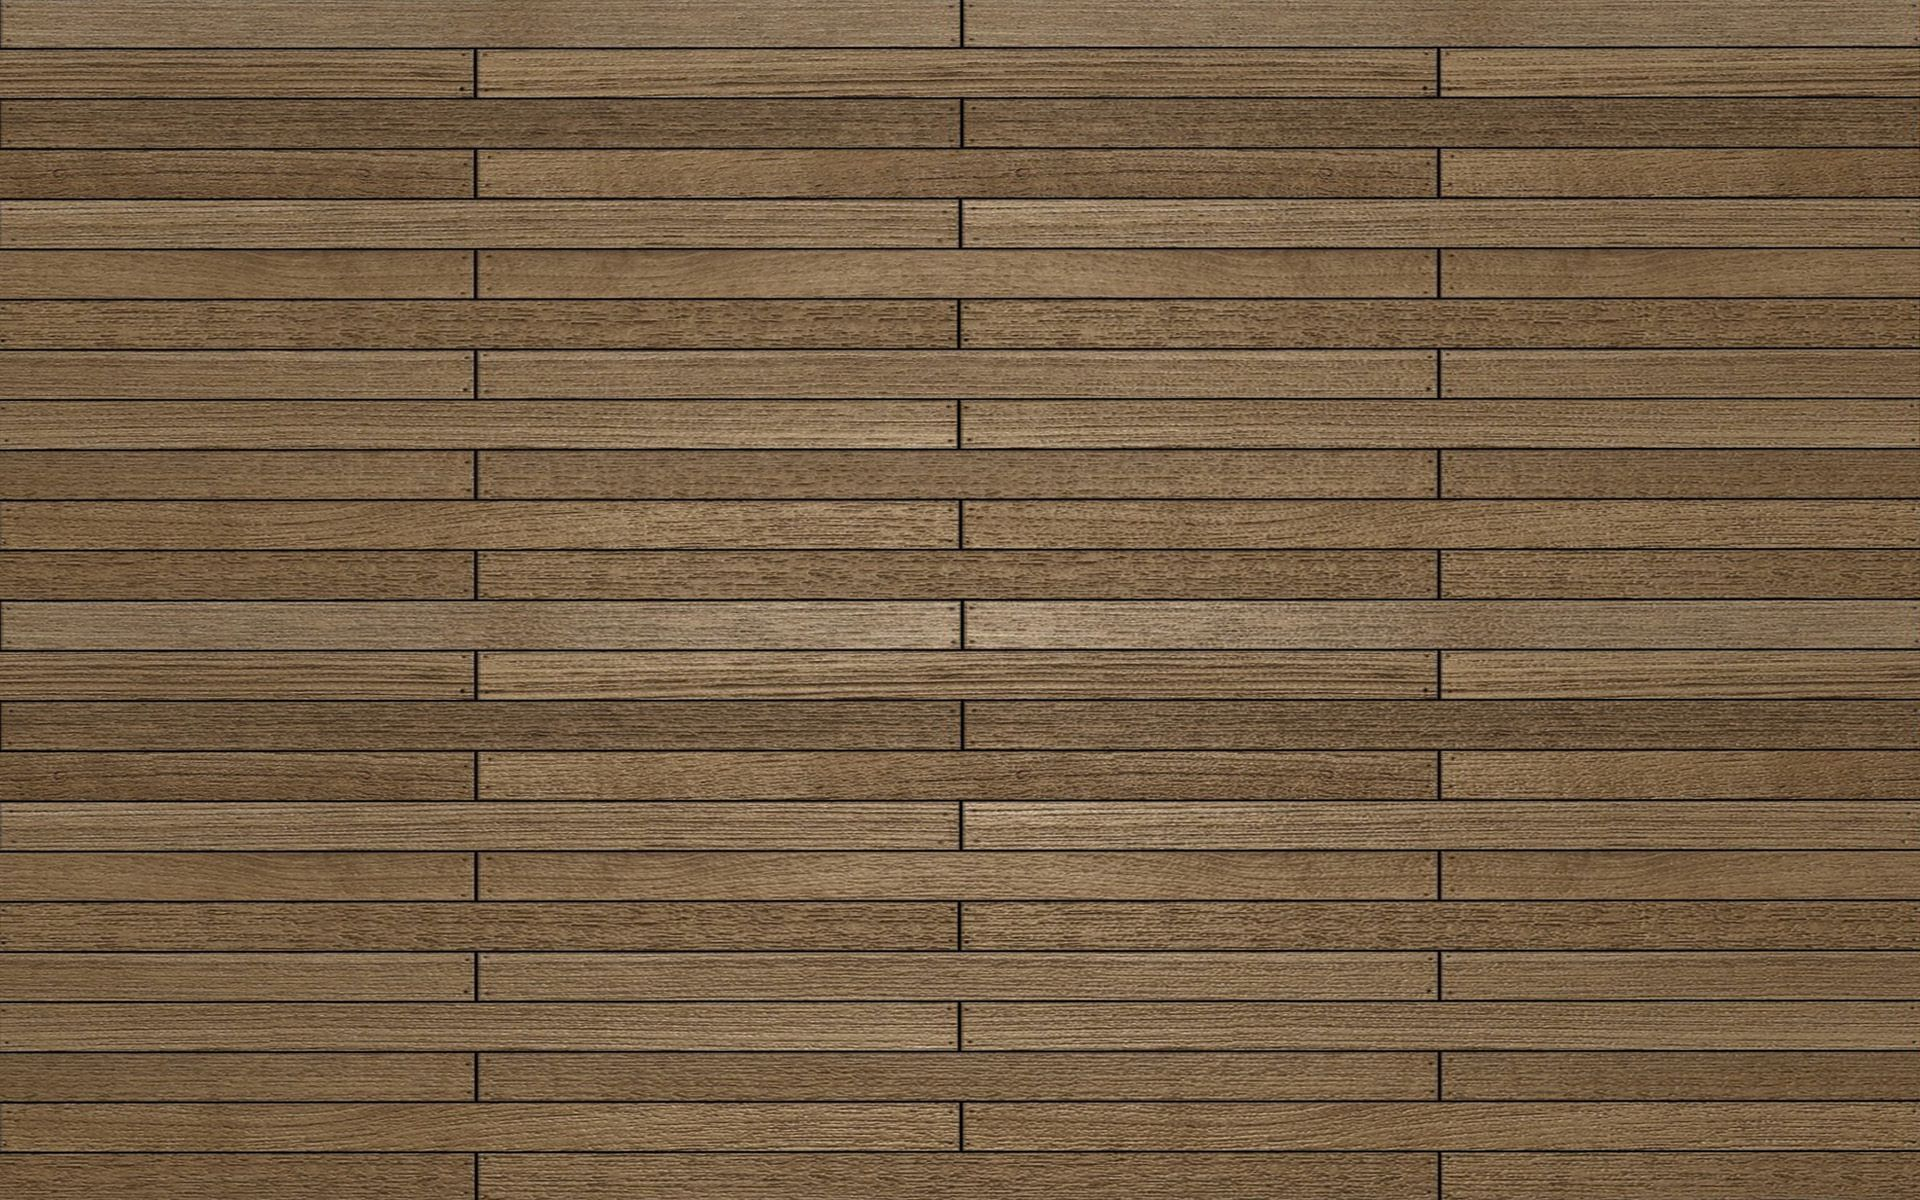 Wood flooring background awesome 31006 material texture and pattern pinterest wood floor Wood pattern tile